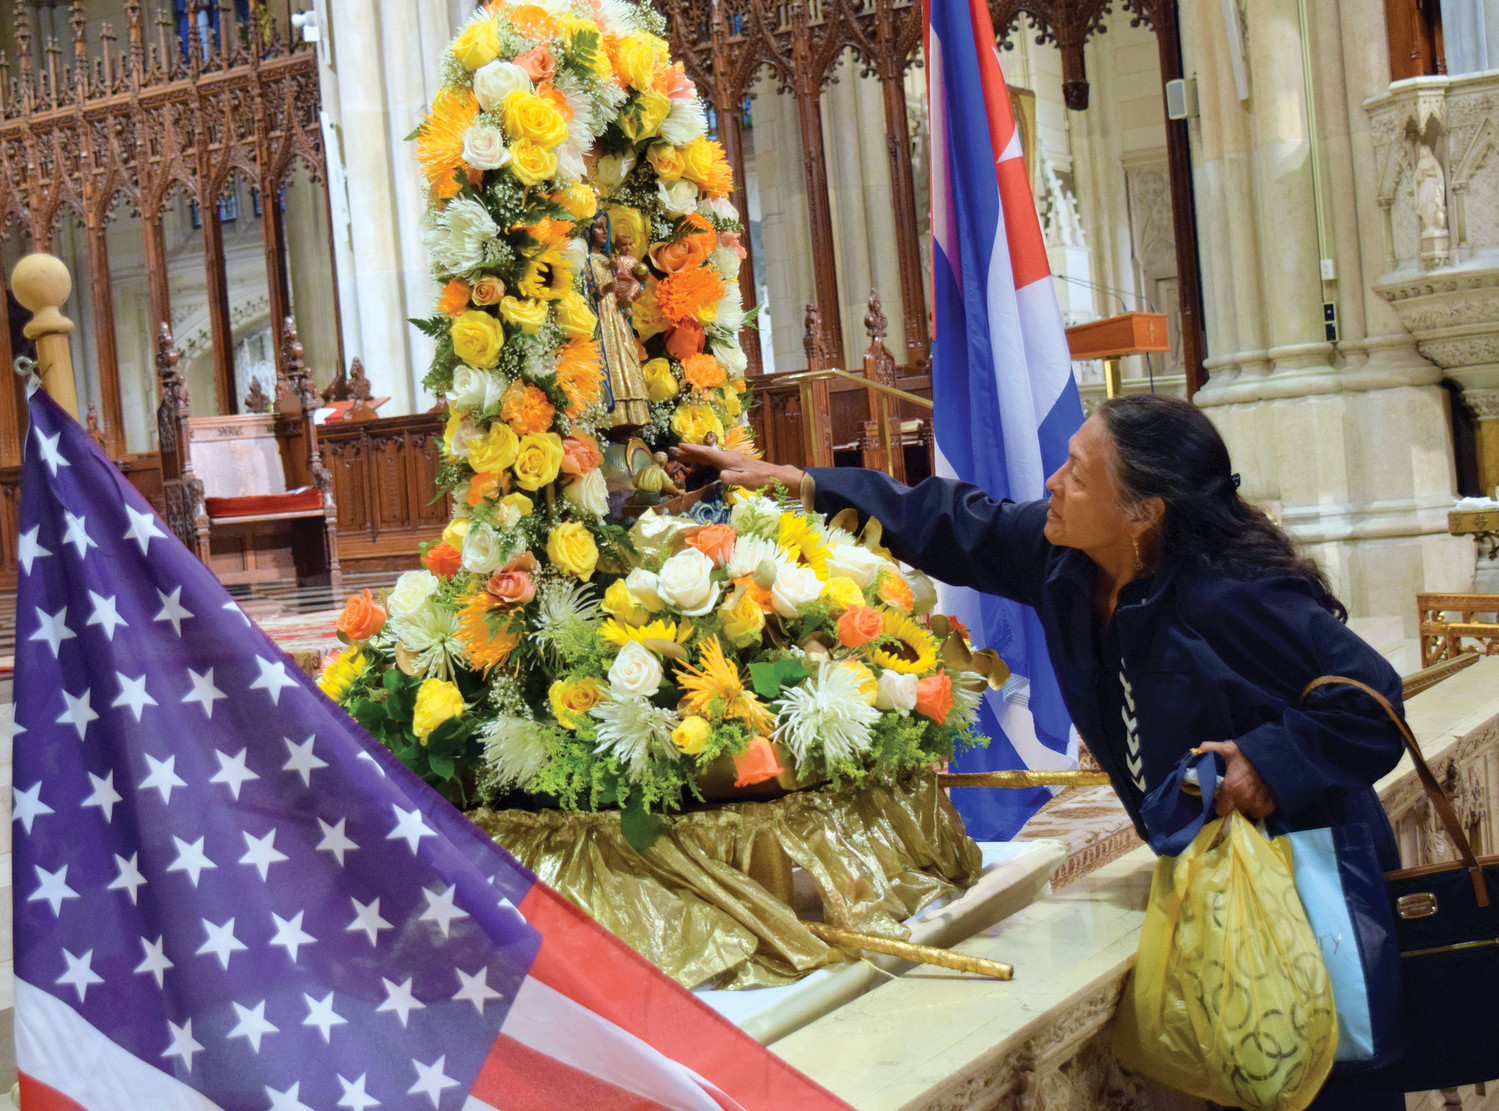 A woman reaches out to the image of Our Lady of Caridad del Cobre.